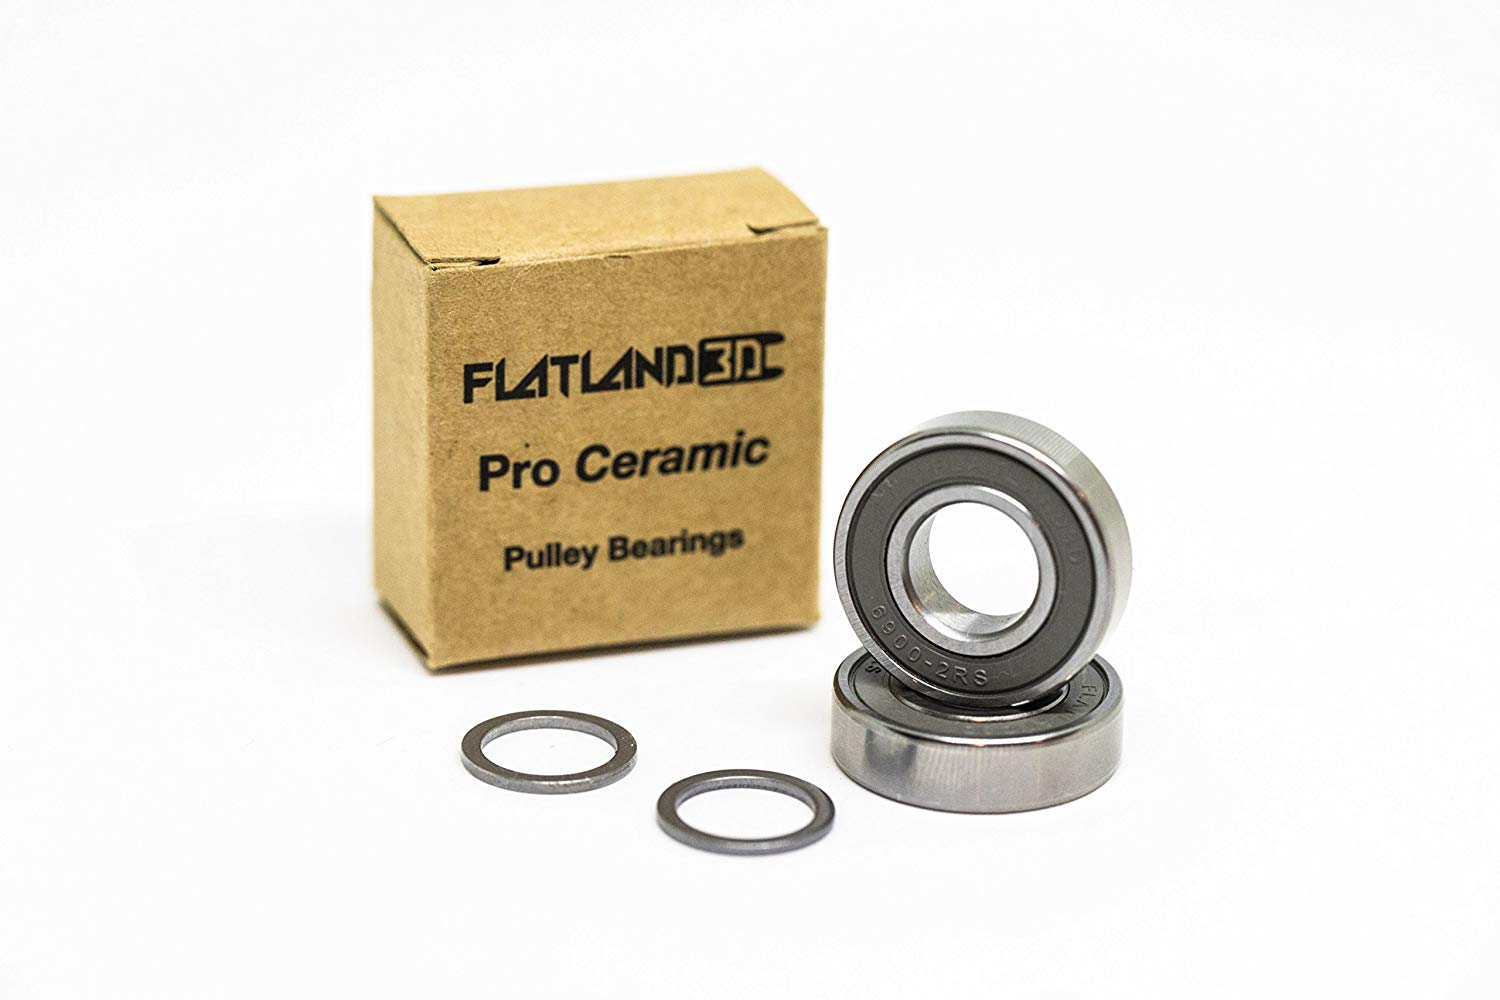 flatland3d Pro Ceramic Pulley Bearings - 6900 for Evolve GT and GTX